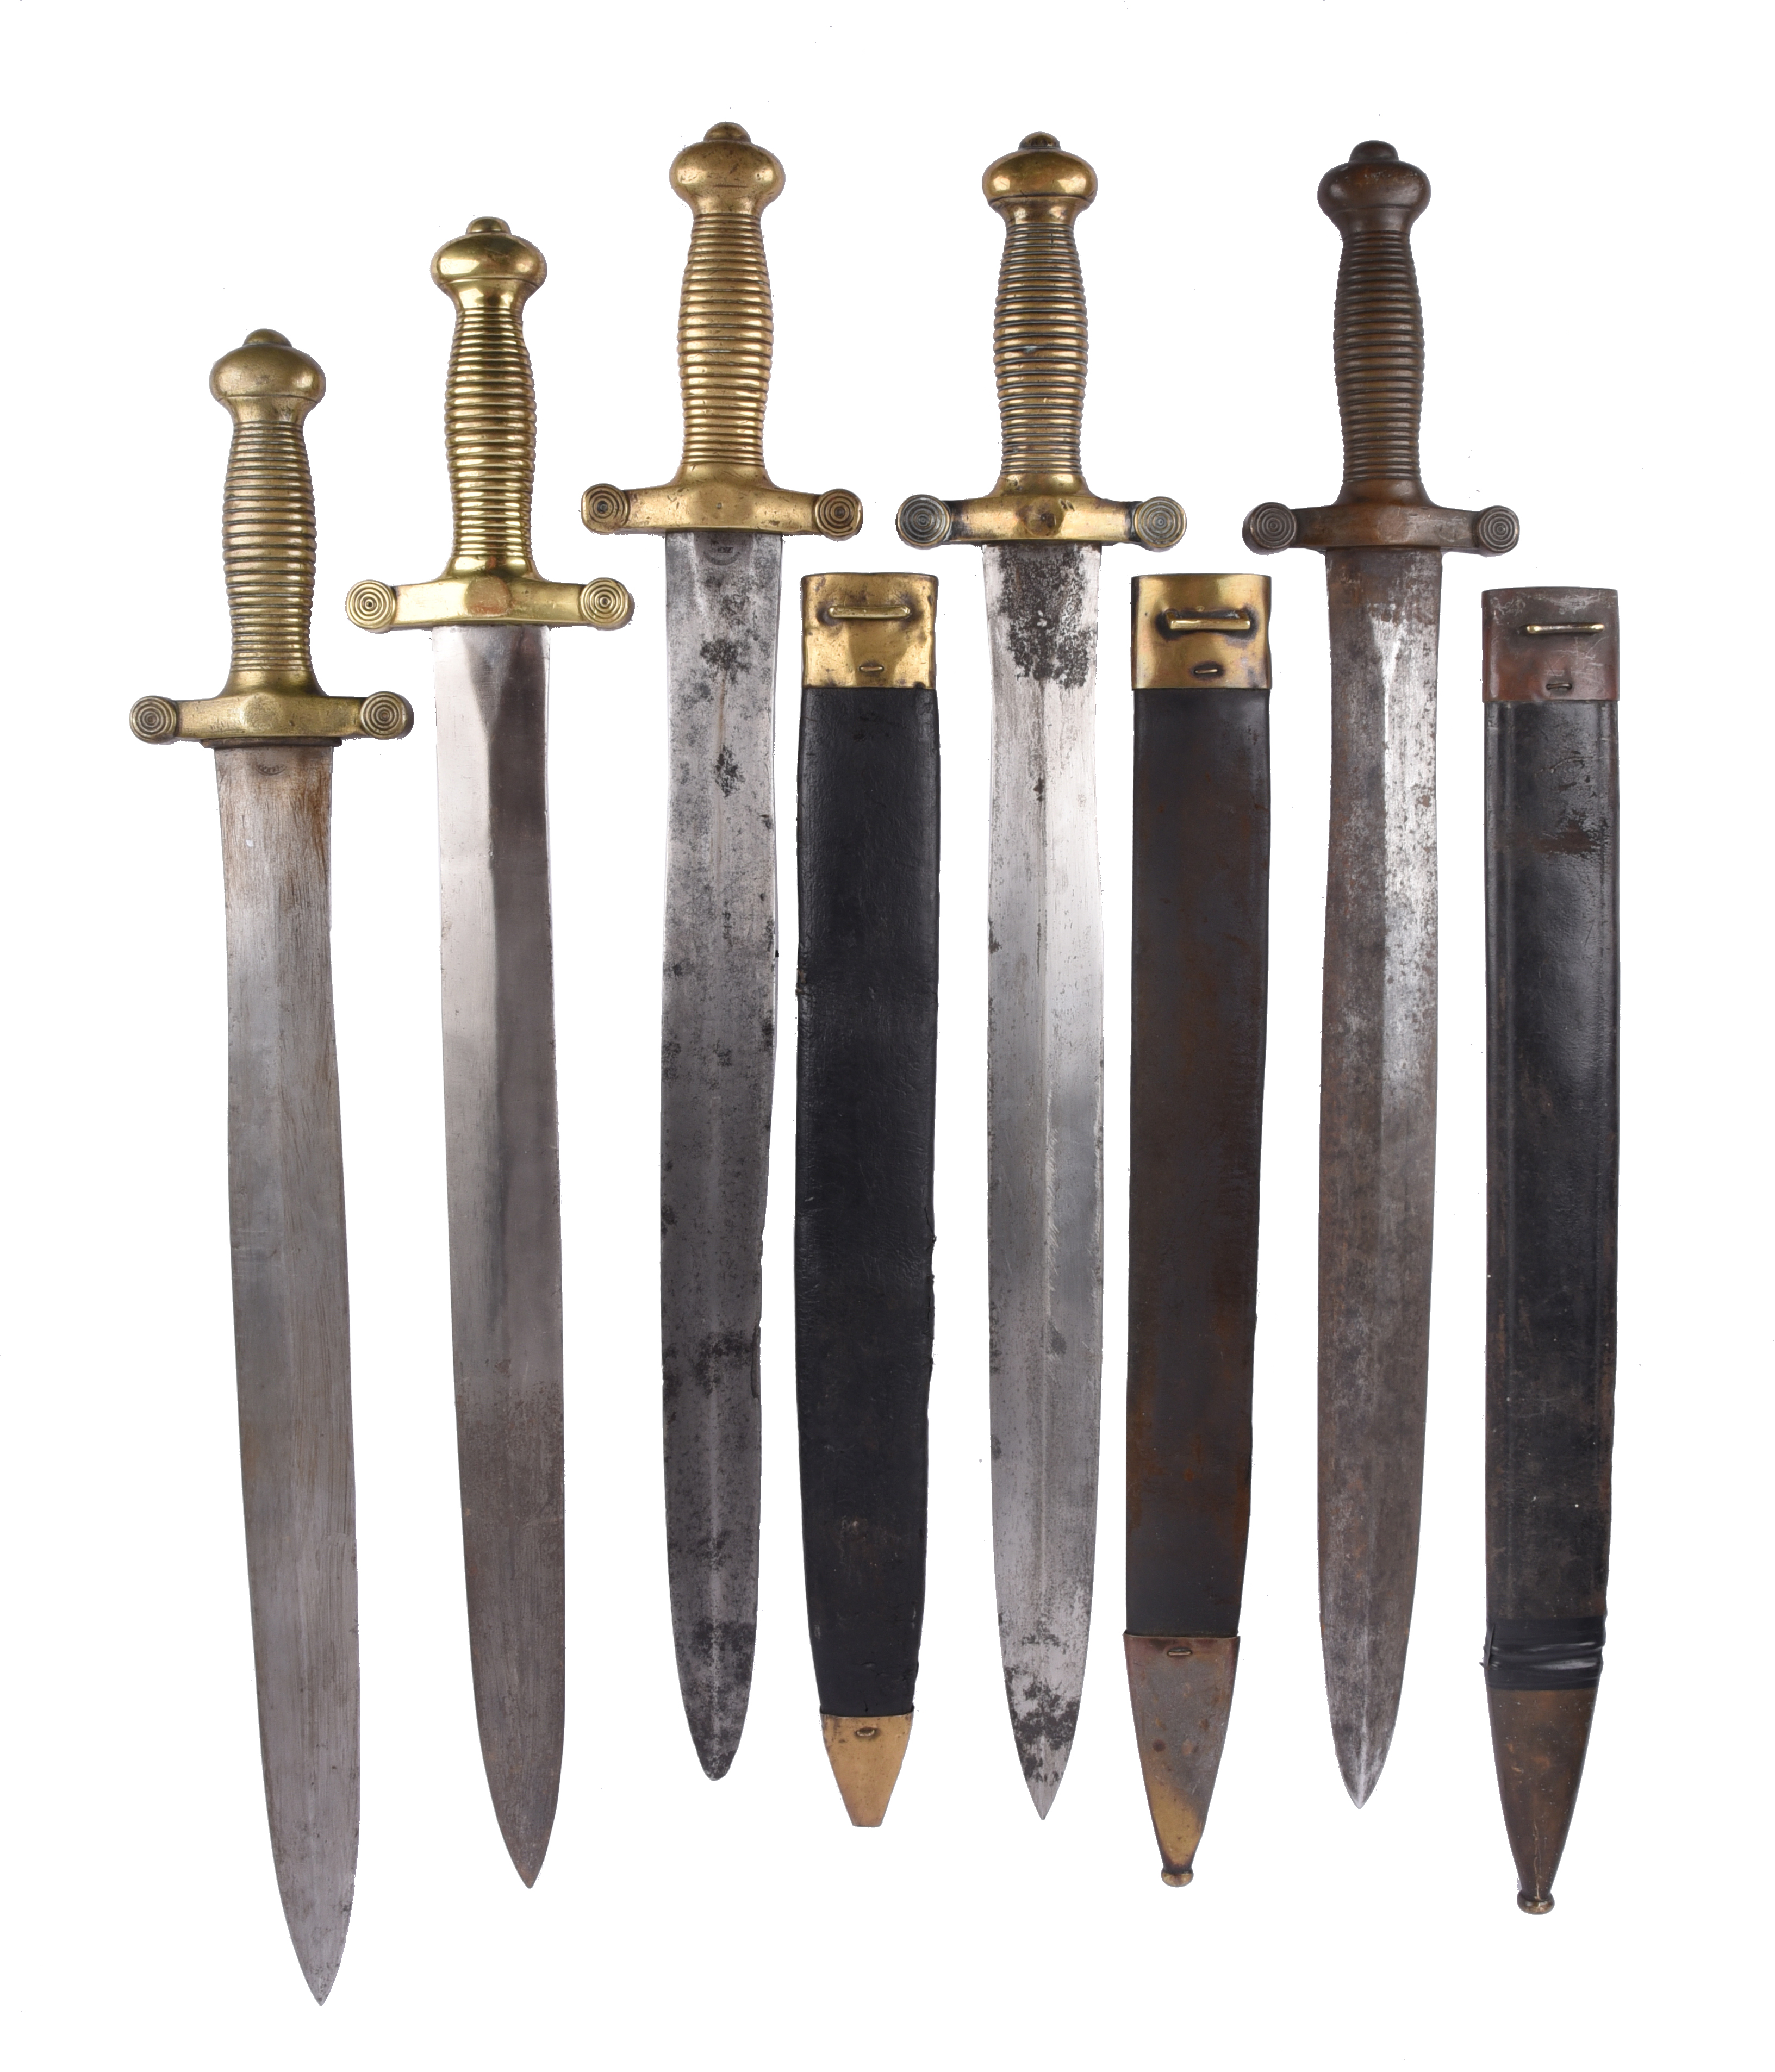 Five French model 1831 foot artillery sidearms, broad double edged blades, cast brass hilts of '